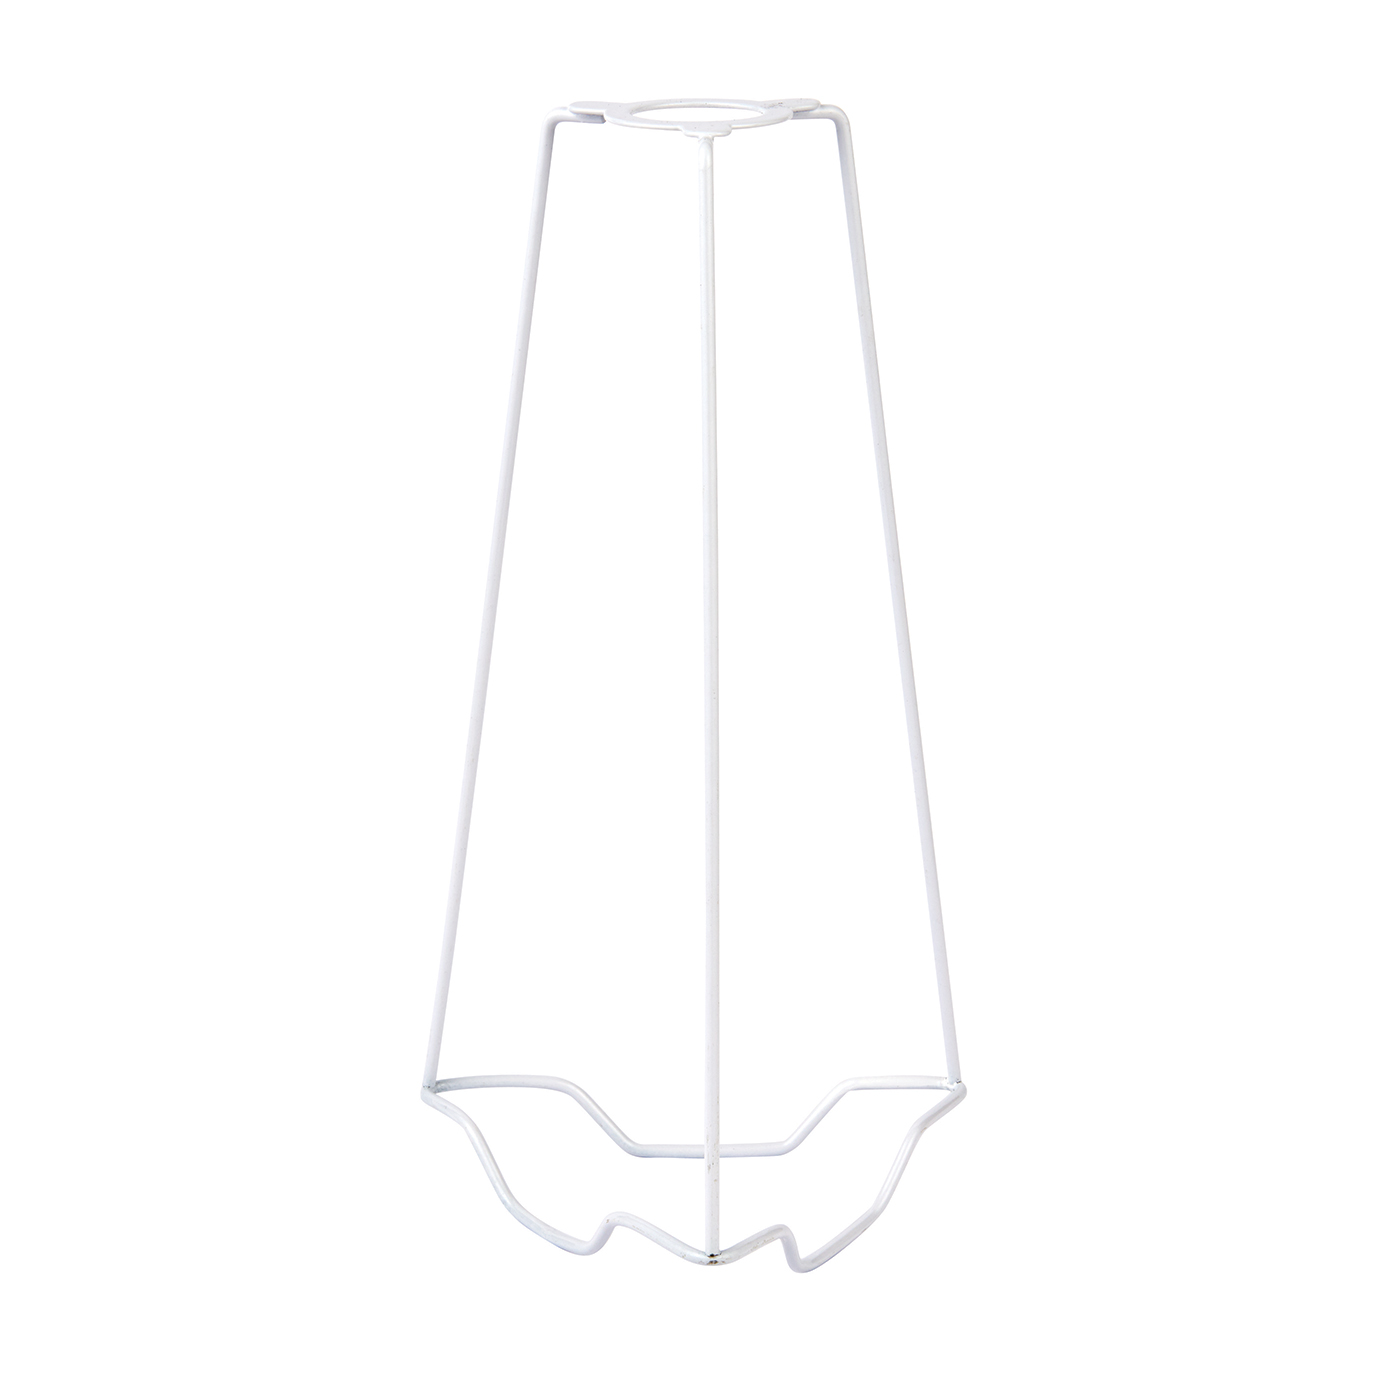 Endon SC-9 lampshade carrier 9 inch Gloss white 250mm height x 125mm diameter